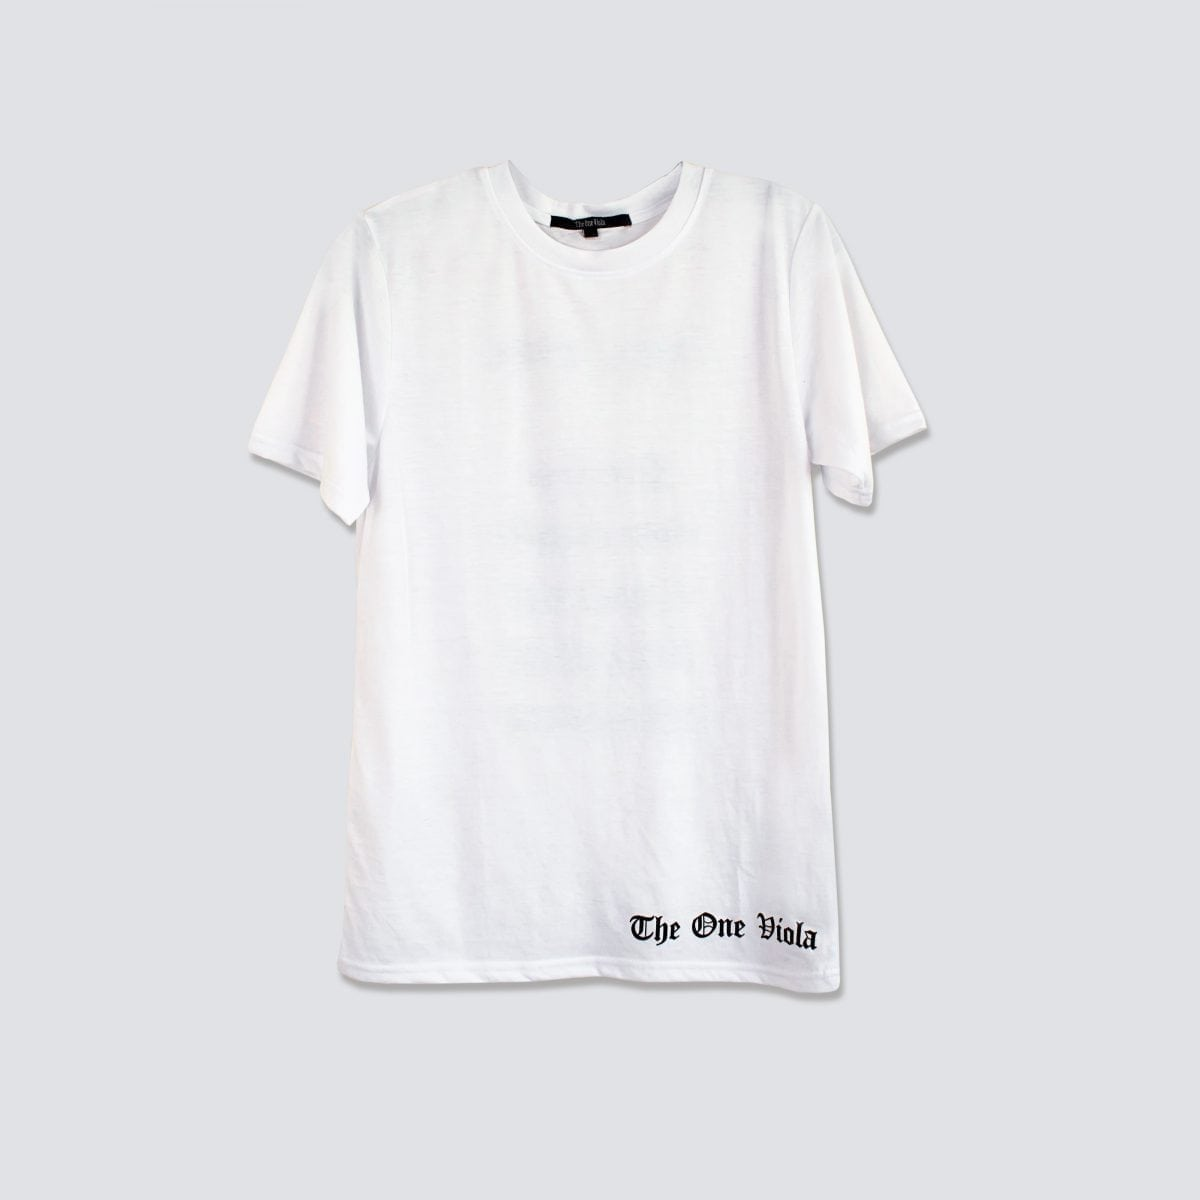 exclusive white streetwear tshirt